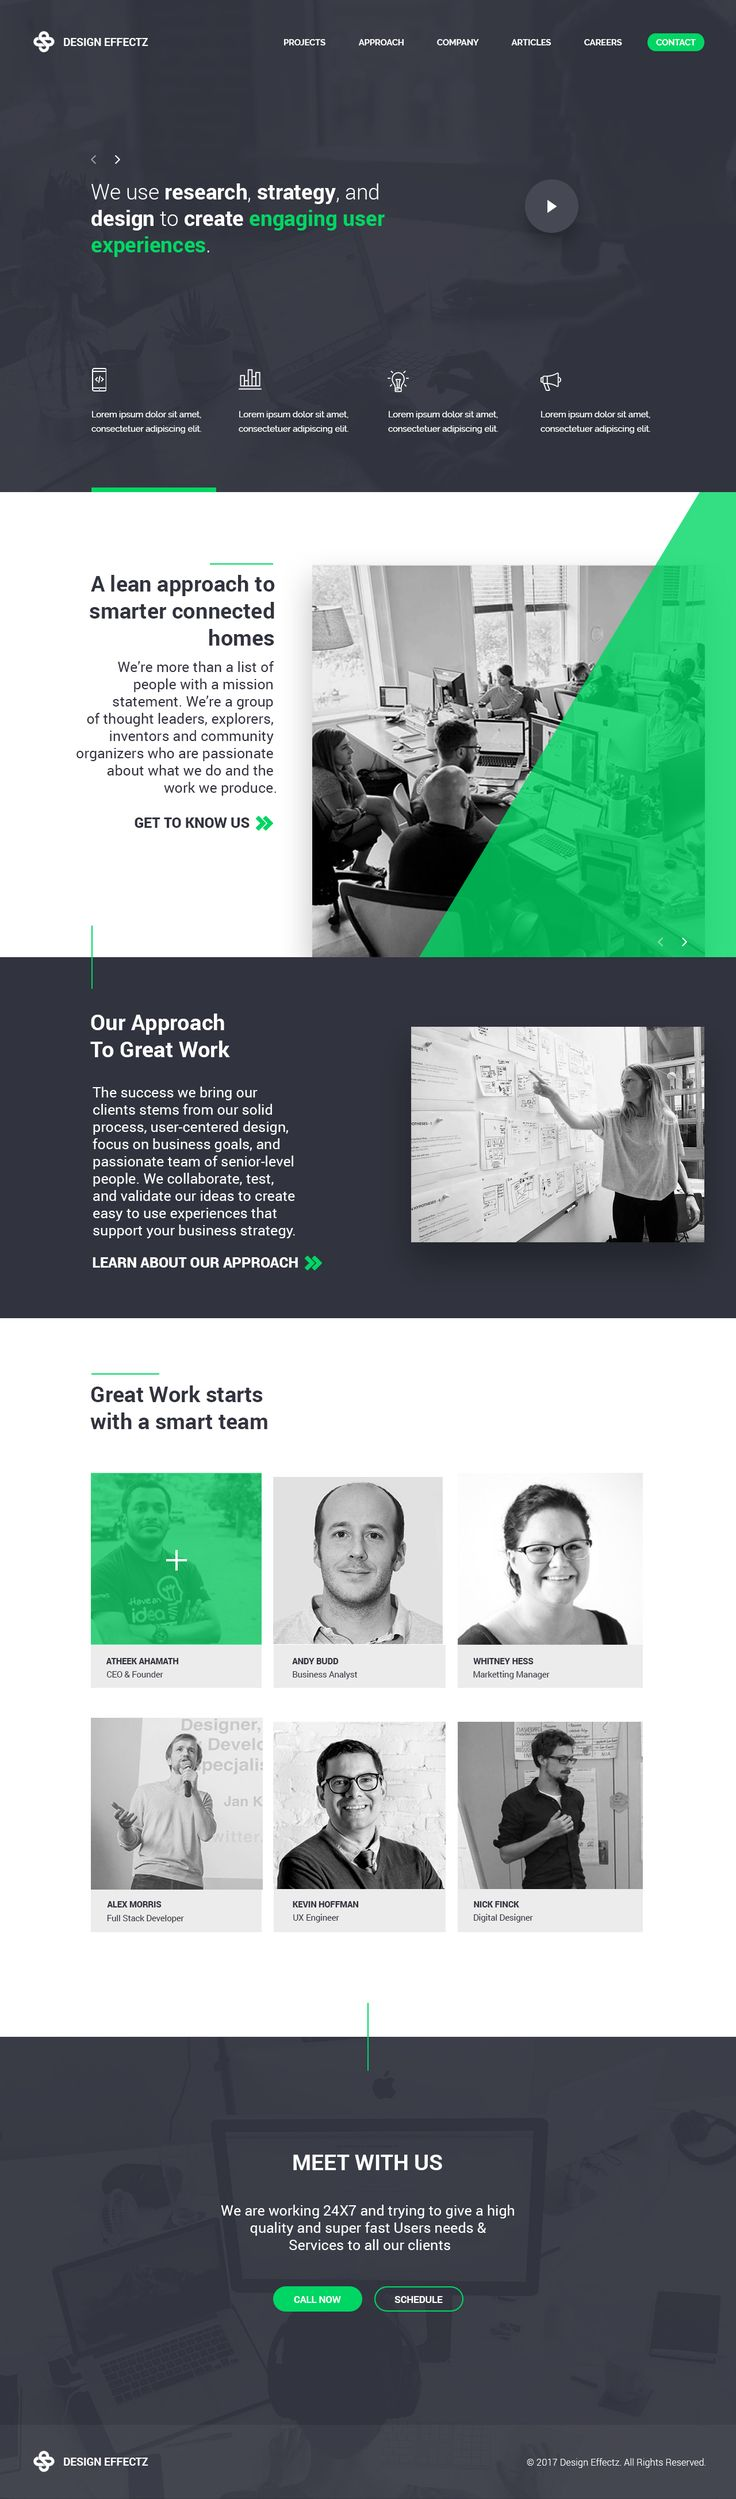 Website landing page design. I like the grid and using green on gray as the main color.